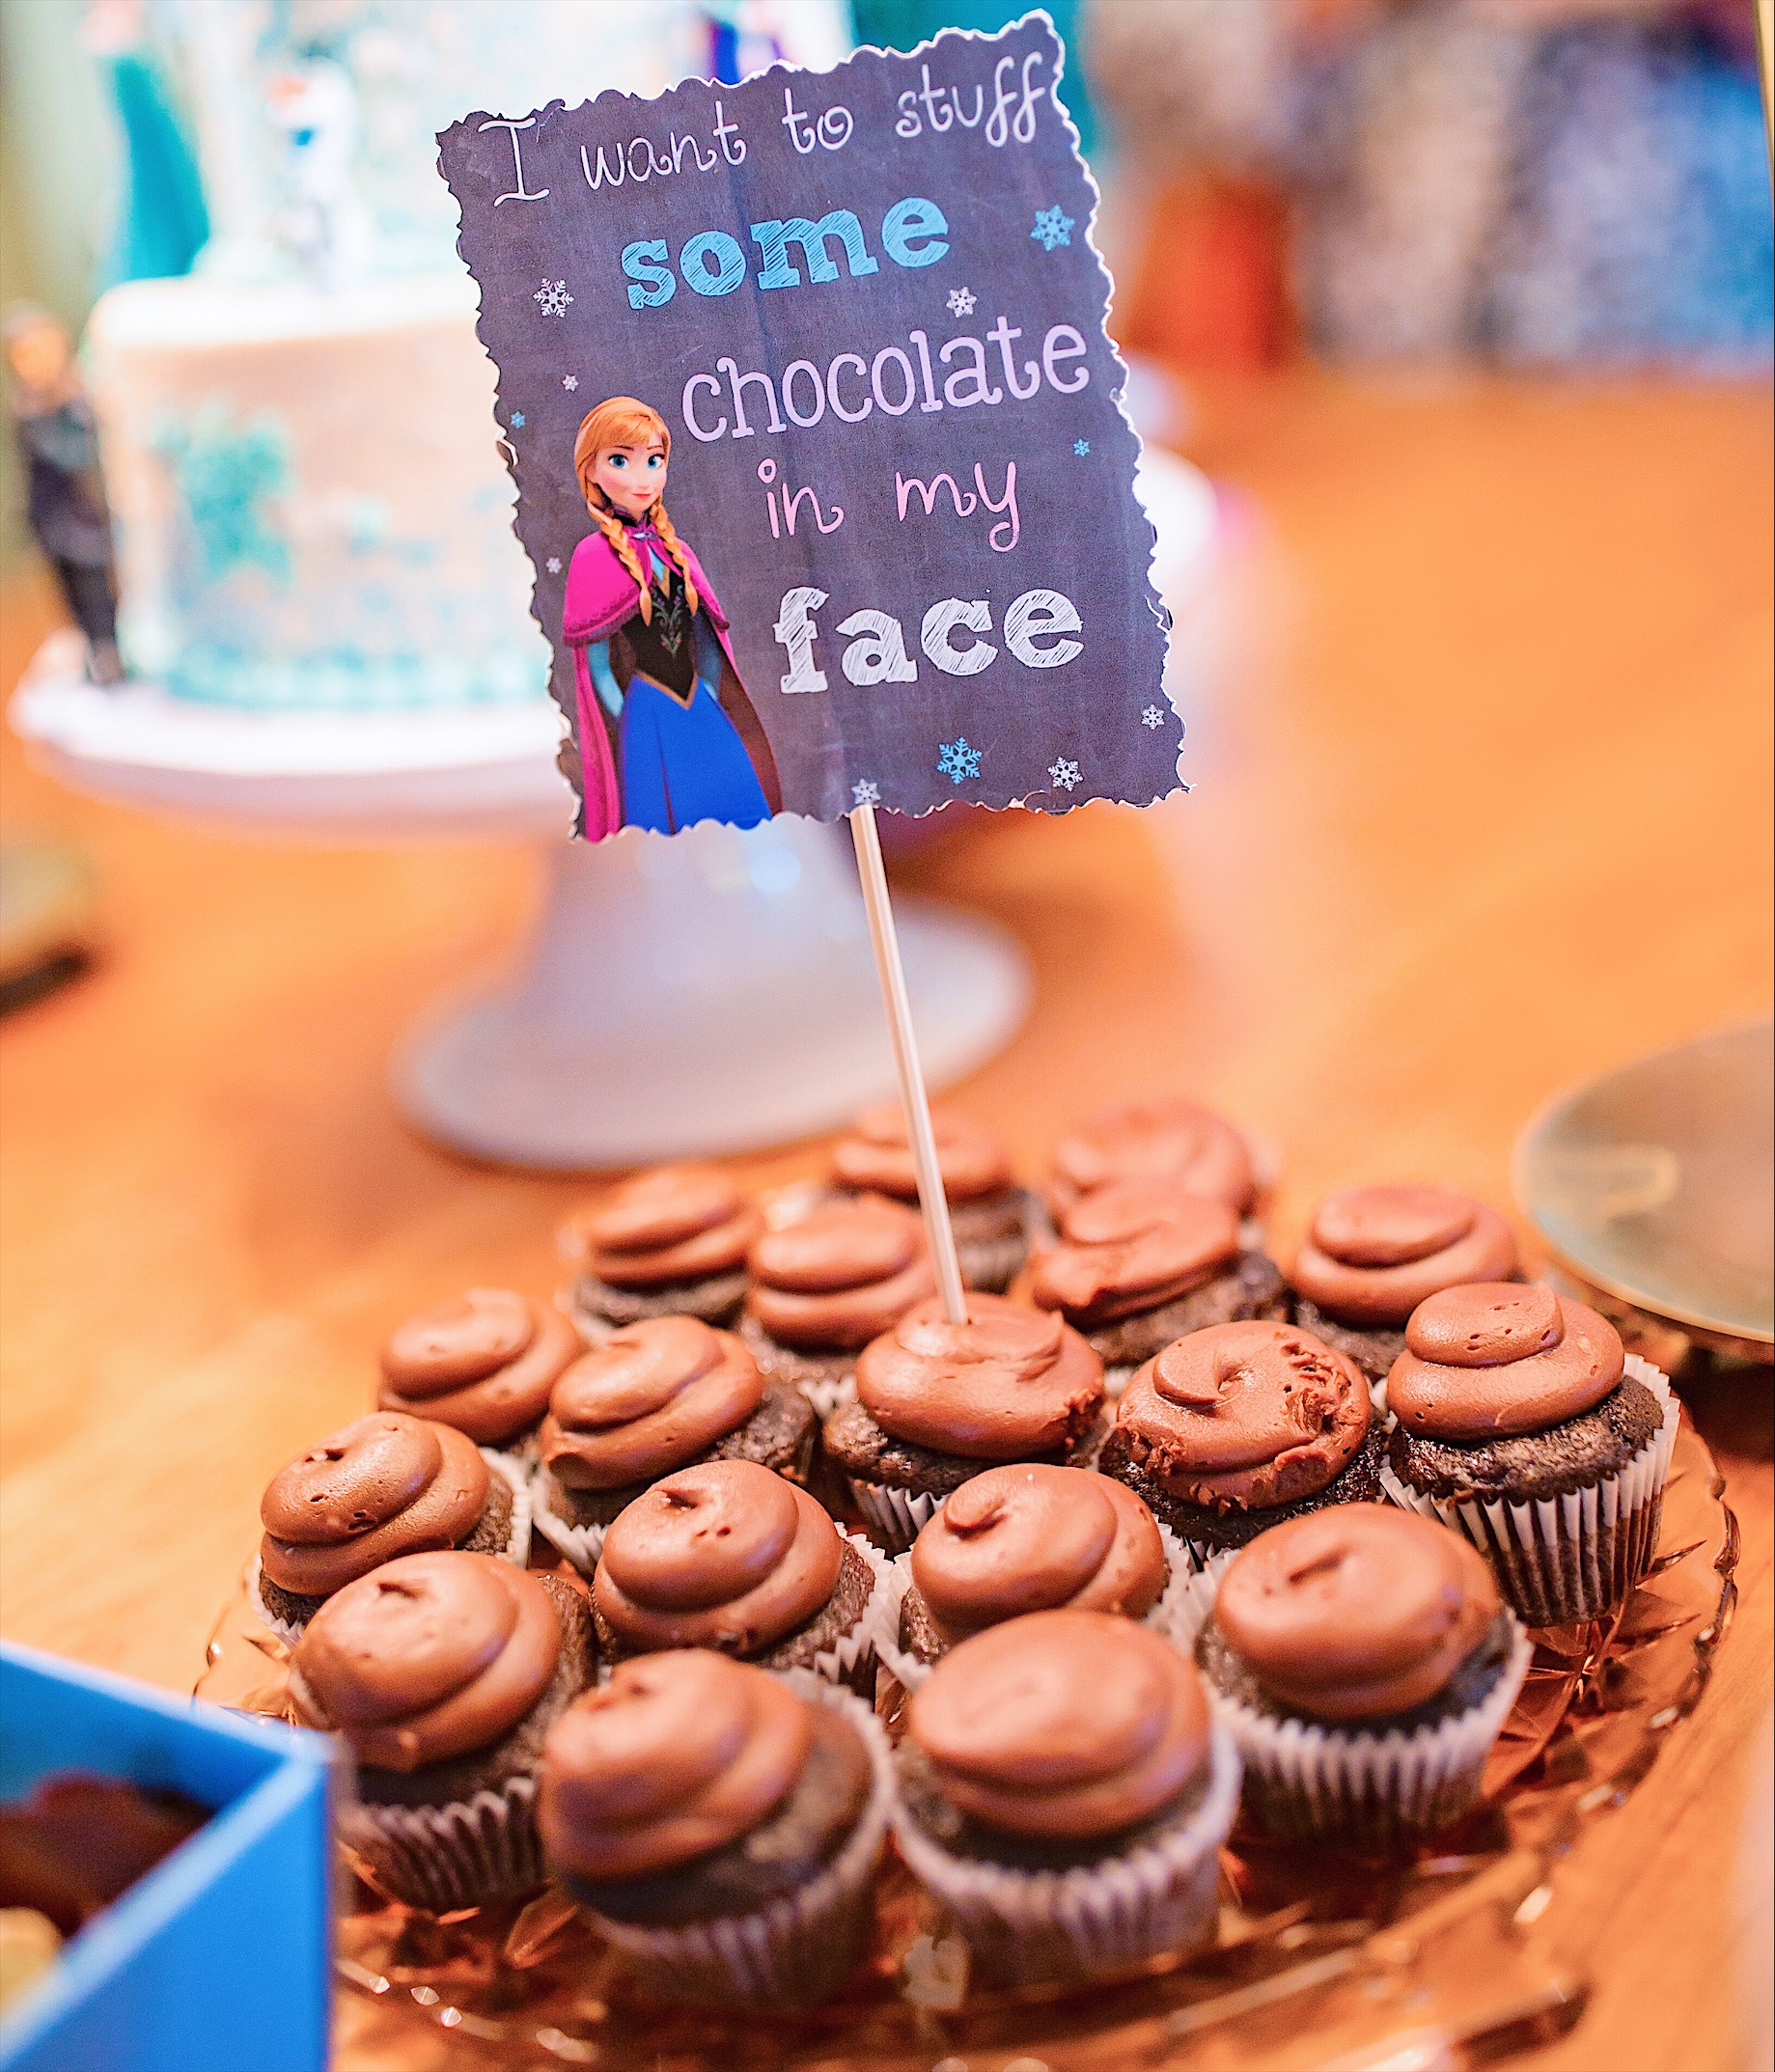 i want to stuff some chocolate in my face frozen birthday